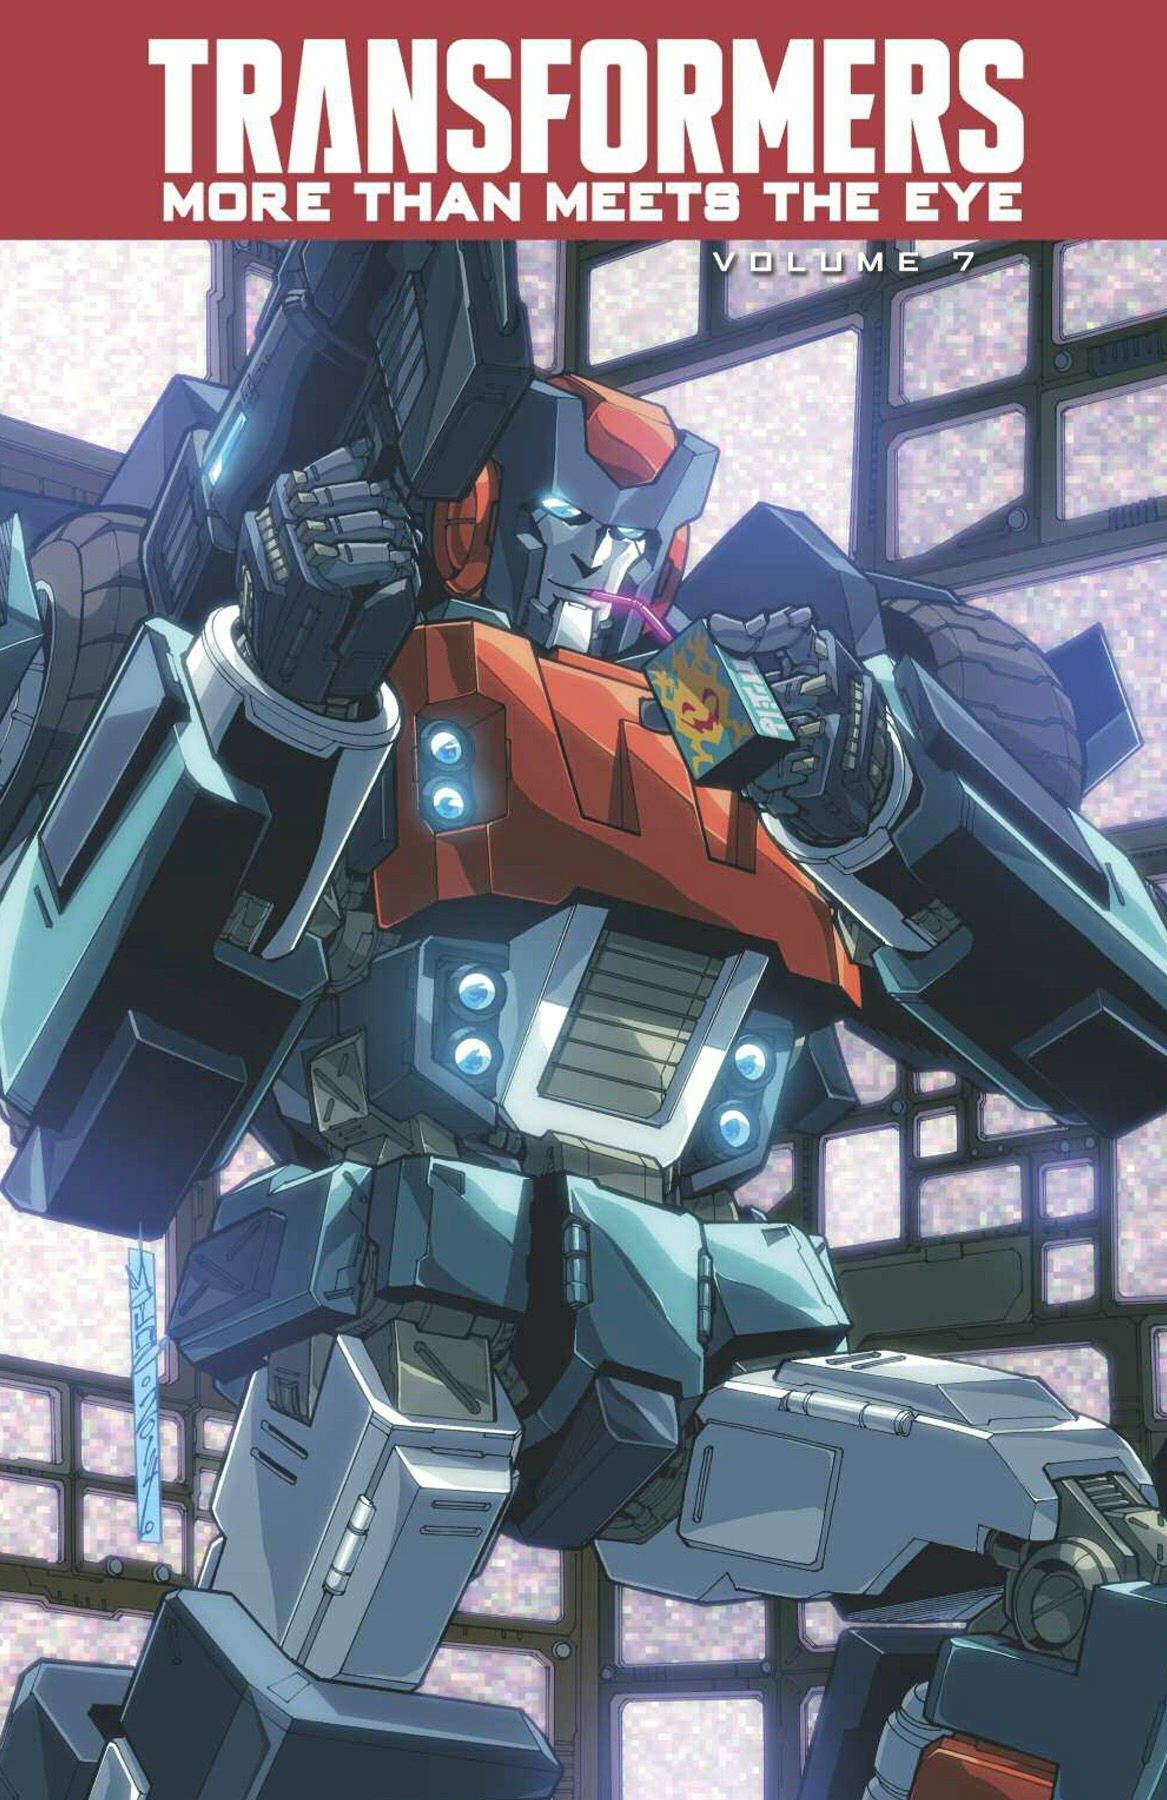 Transformers: More Than Meets The Eye Volume 7